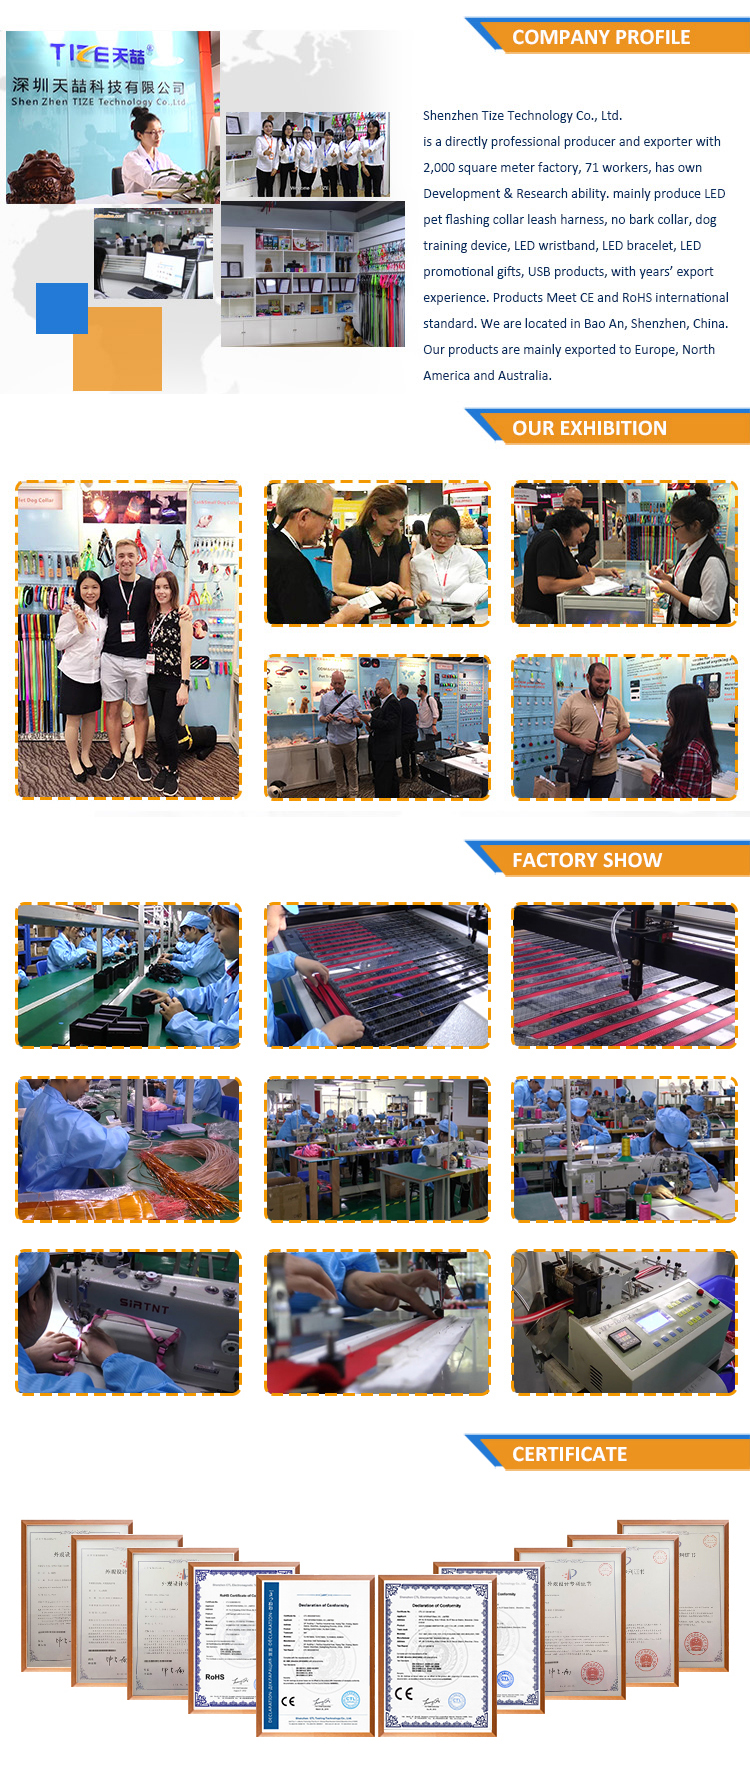 2-company profile+exhibition+factory show_pet.jpg